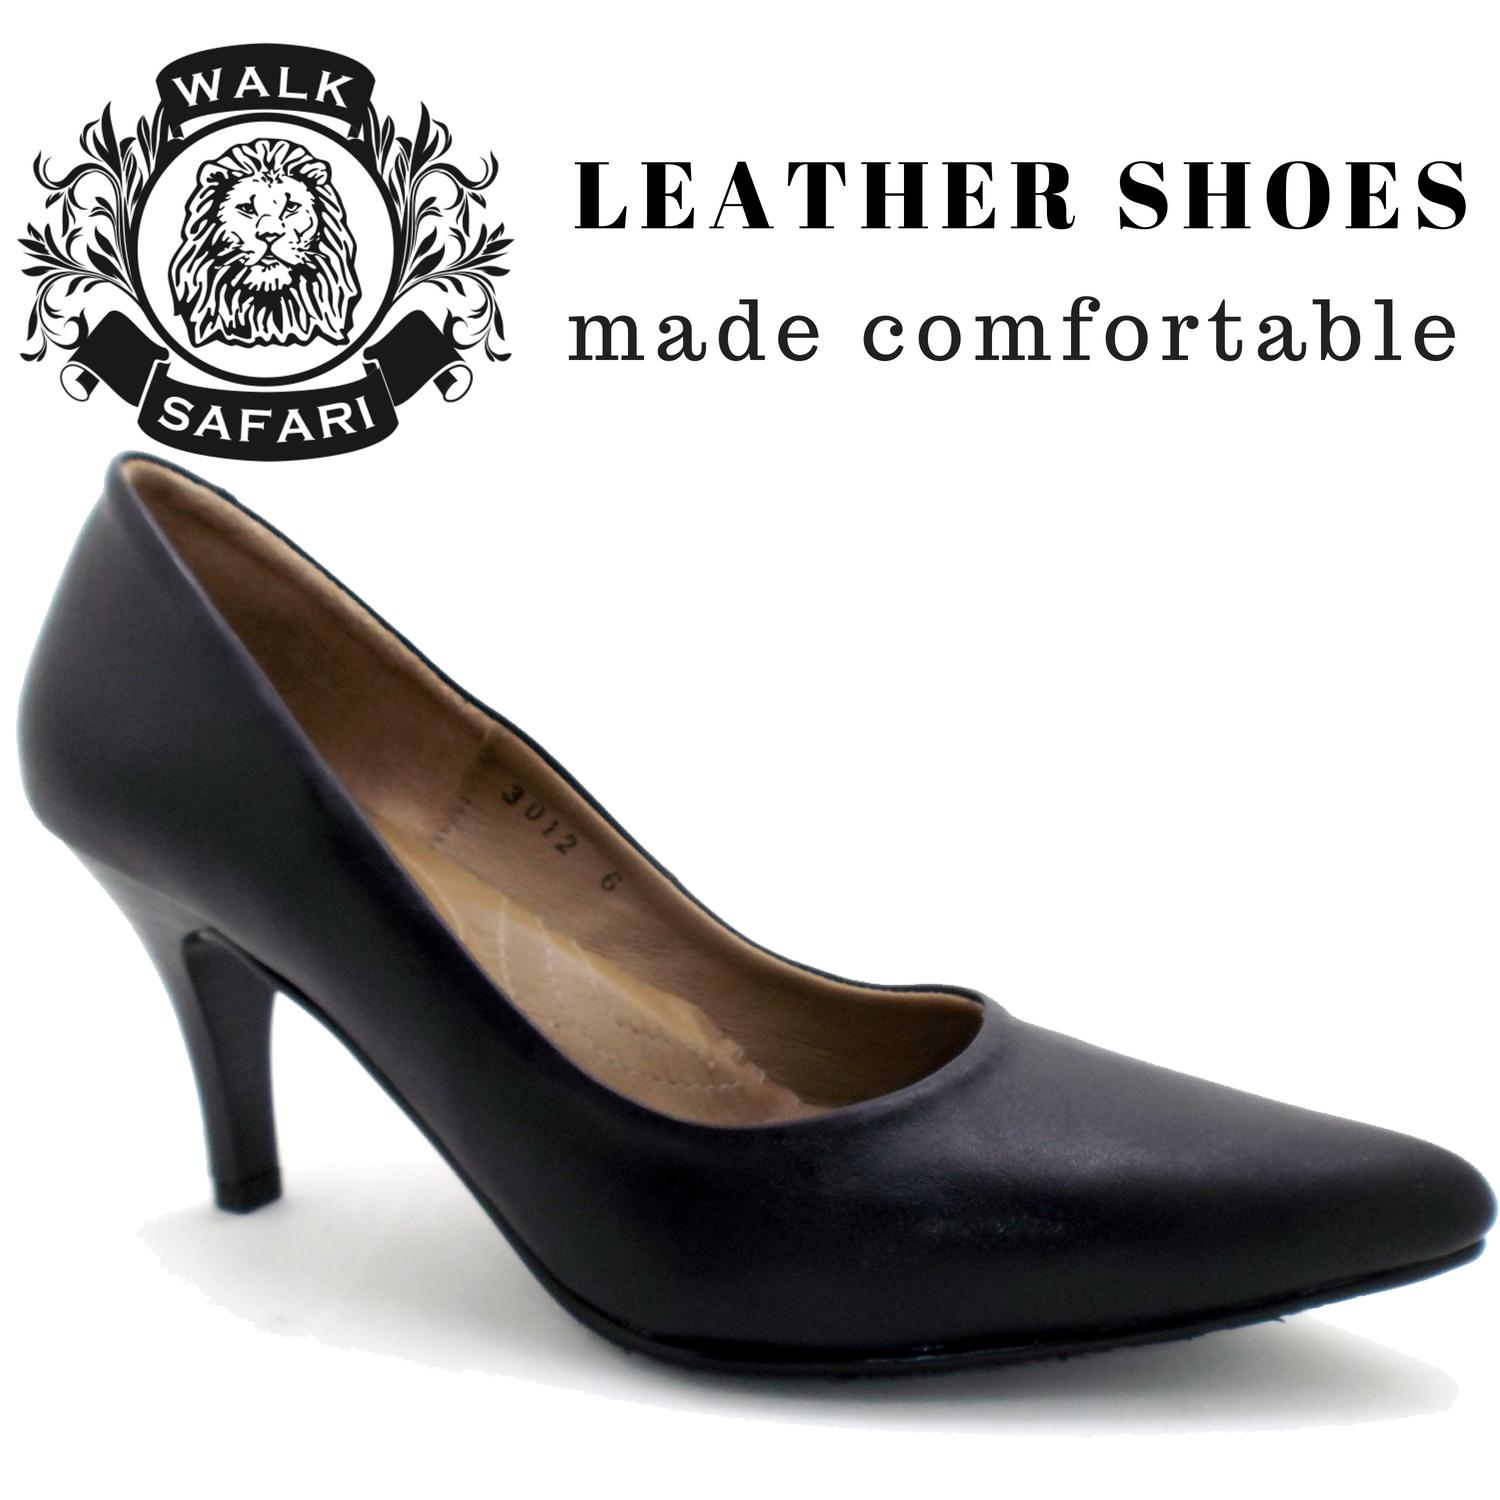 [walk Safari Lm3012] Ladies Classy Sharp Toe High Heels Leather Office Shoes By Everyone Footwear.